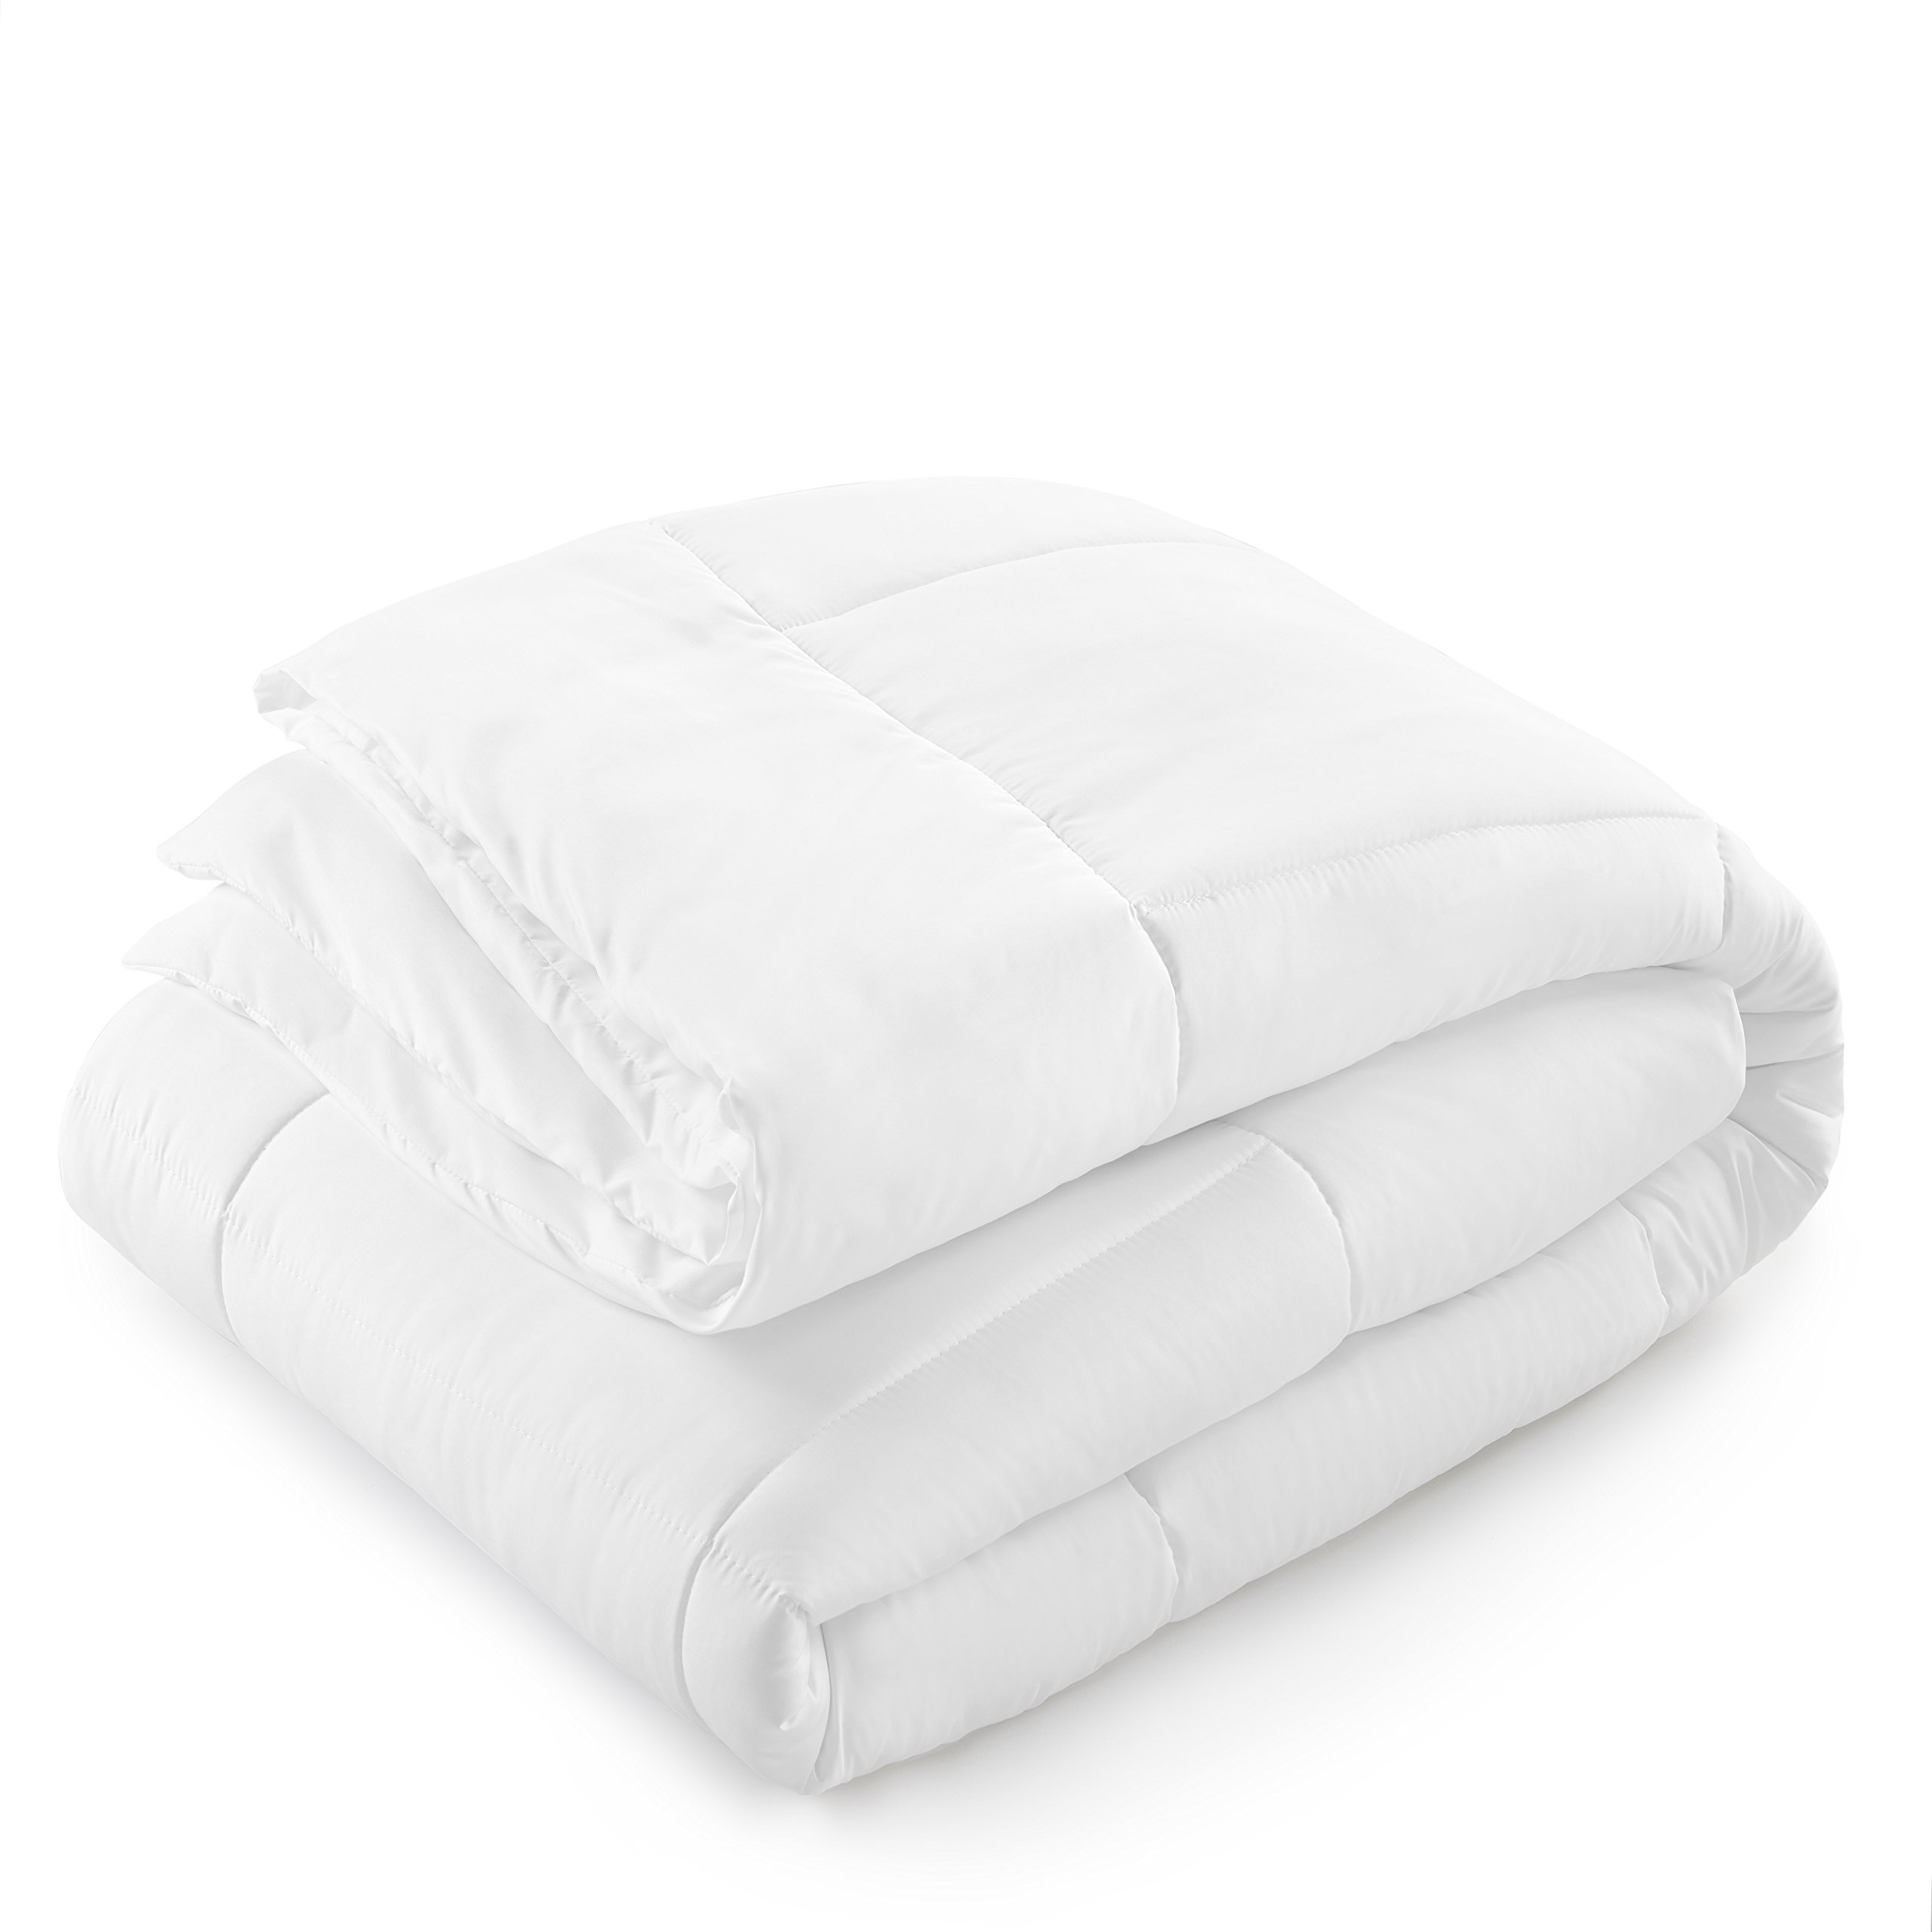 Danjor Linens Luxury Soft All Season White Down Alternative Comforter- Hypoallergenic, Box Stitched- Plush Microfiber fill, Machine Washable, Duvet Insert Queen Size by Danjor Linens (Image #3)